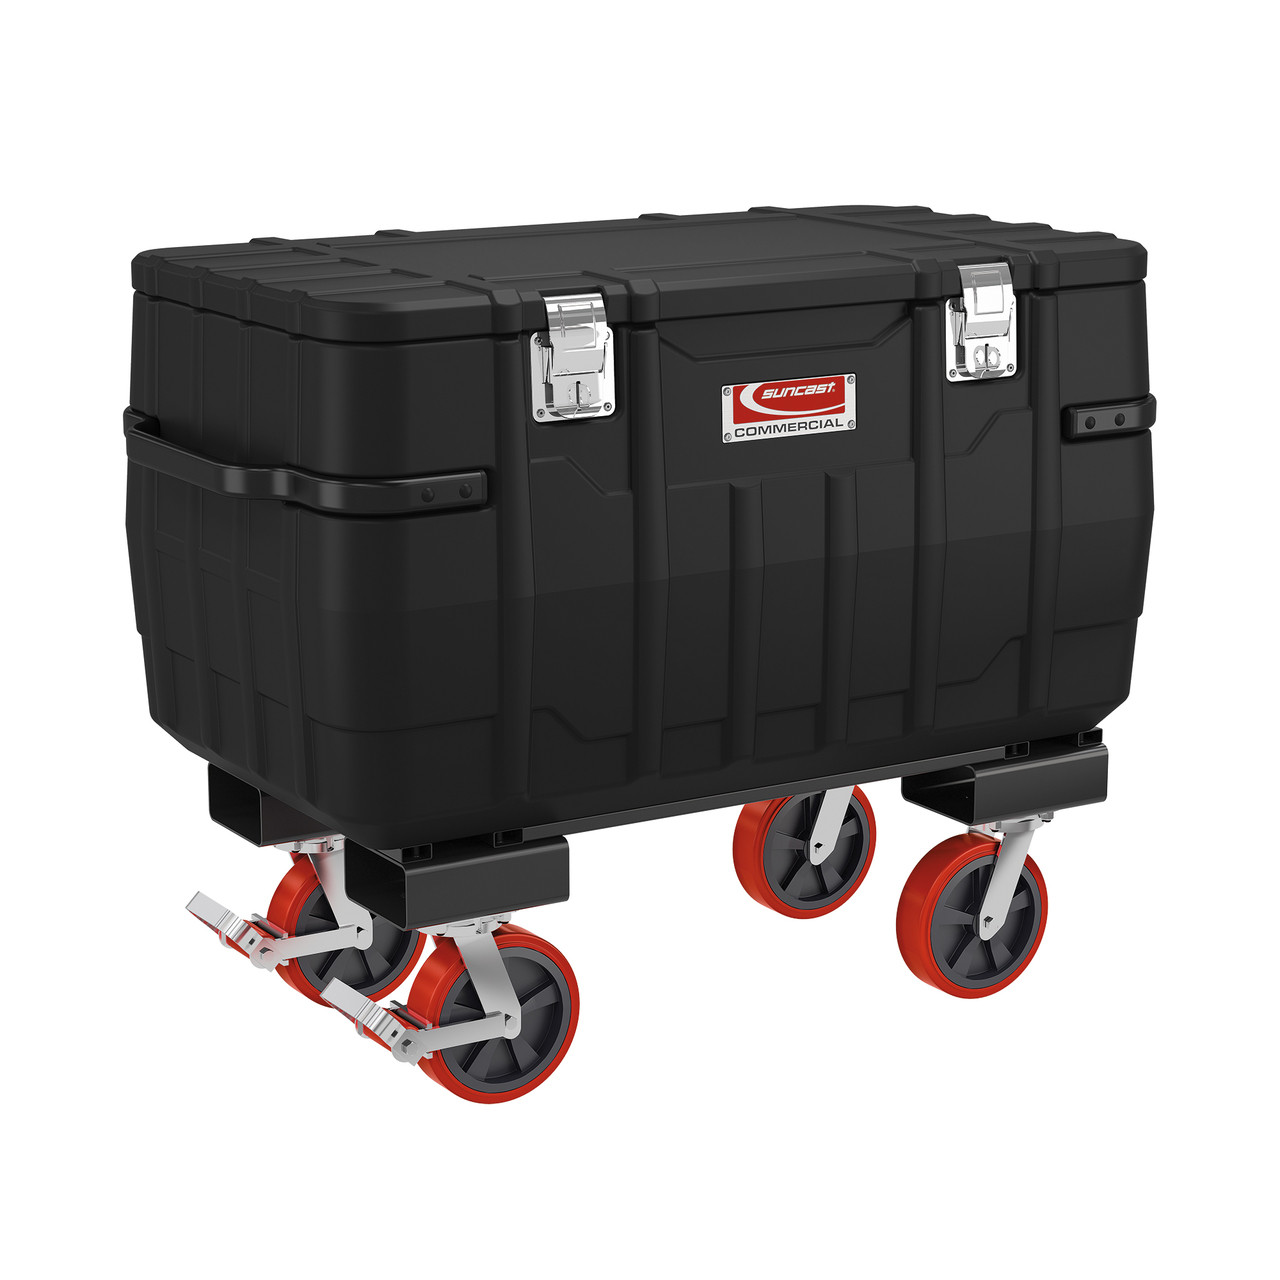 """Suncast 48"""" Job Box with Fork Lift and Casters"""